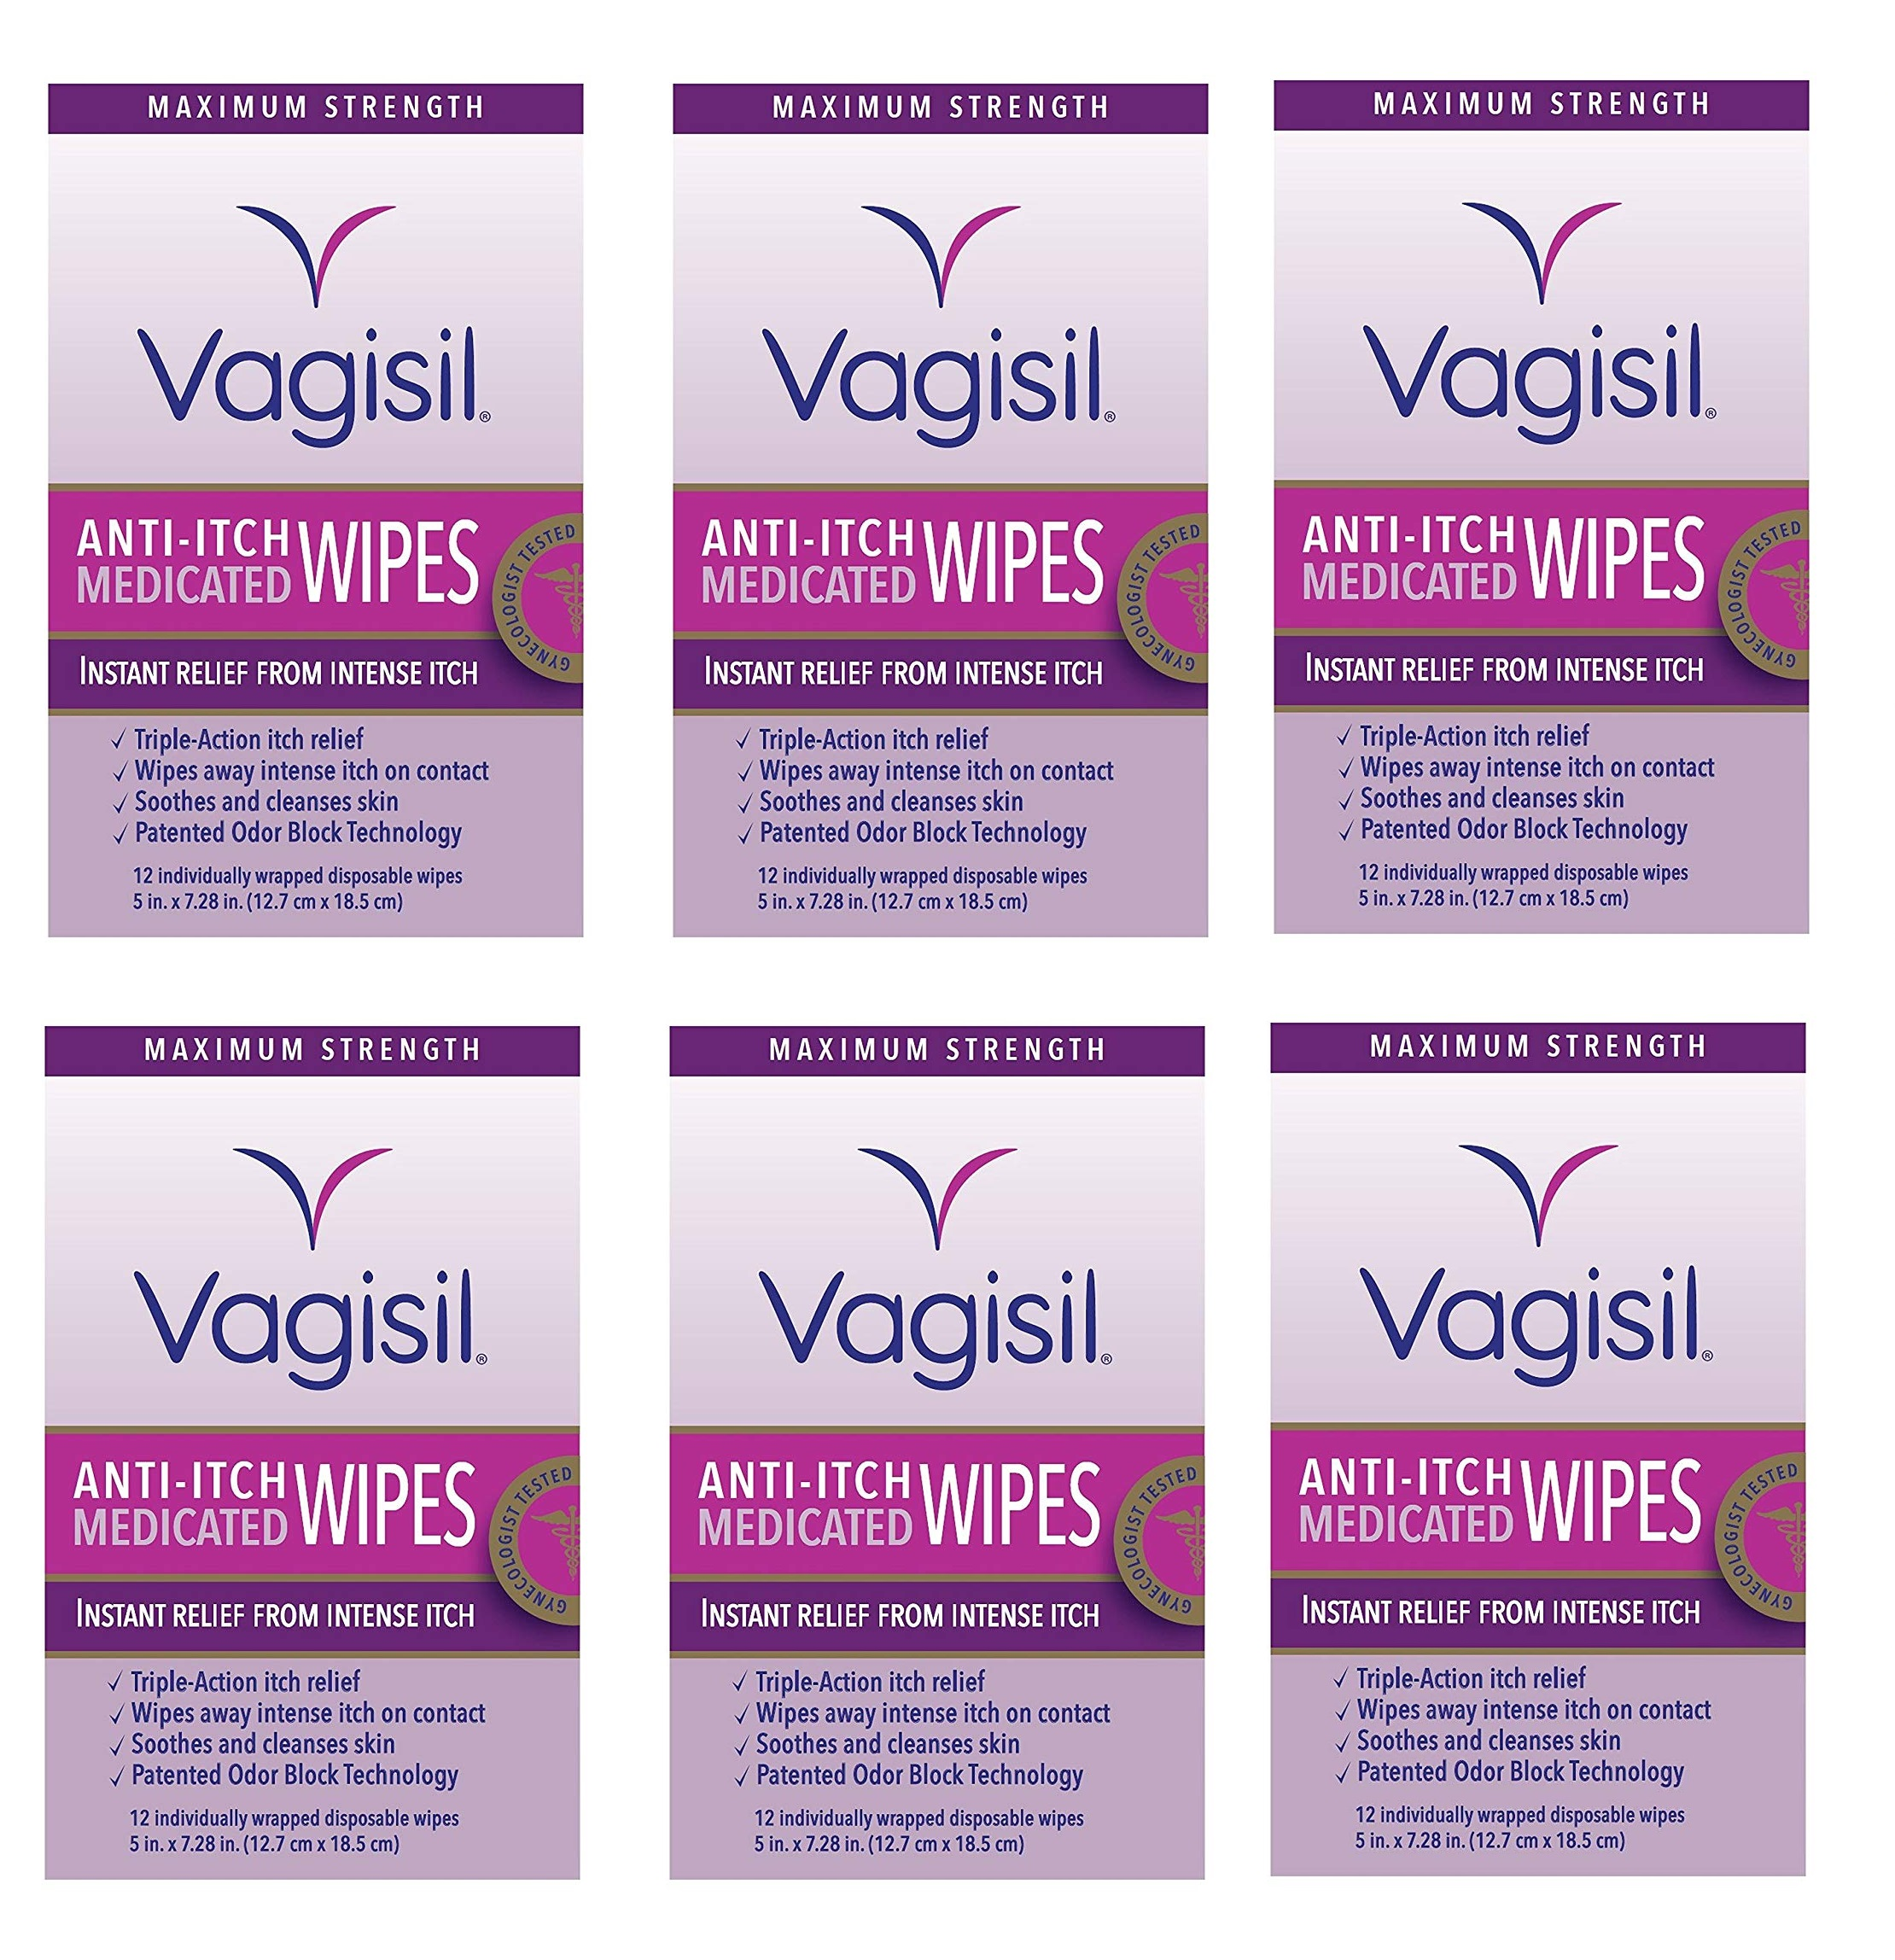 Vagisil Maximum Strength Anti Itch Medicated Wipes, Instant Relief From Intense Itch, 12 Disposable Wipes (Pack of 6)